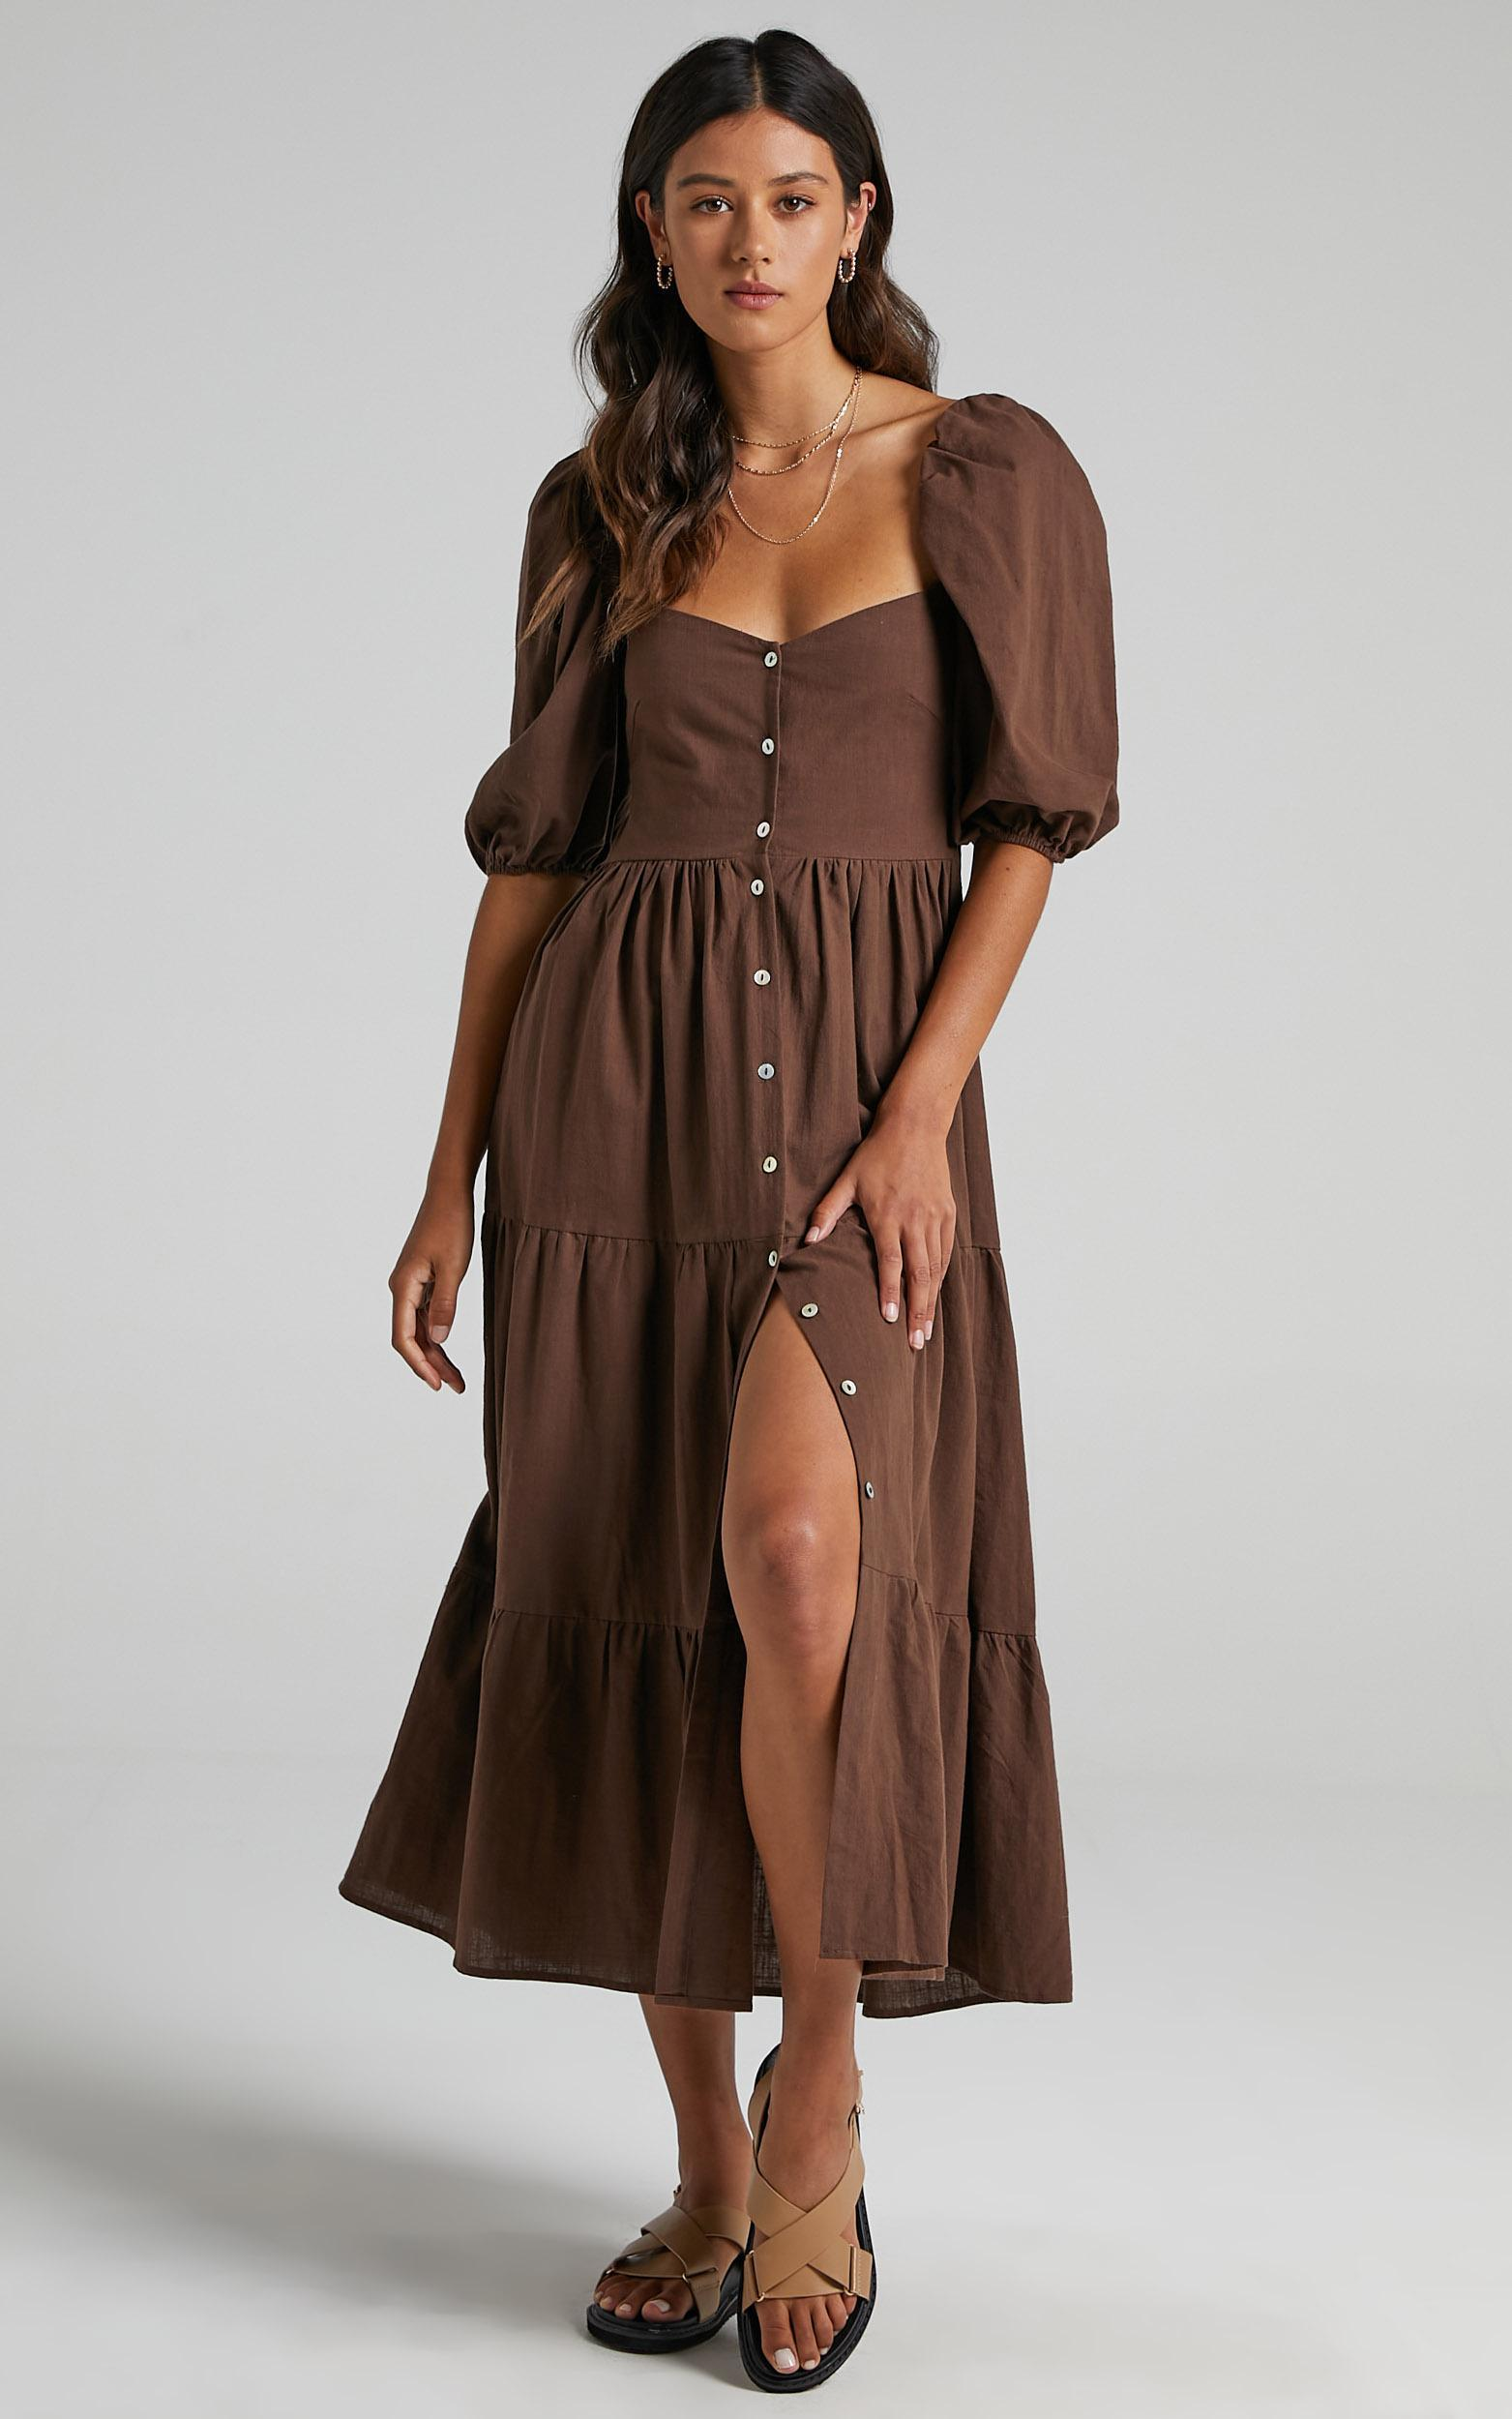 Palmer Dress in Chocolate - 06, BRN1, hi-res image number null